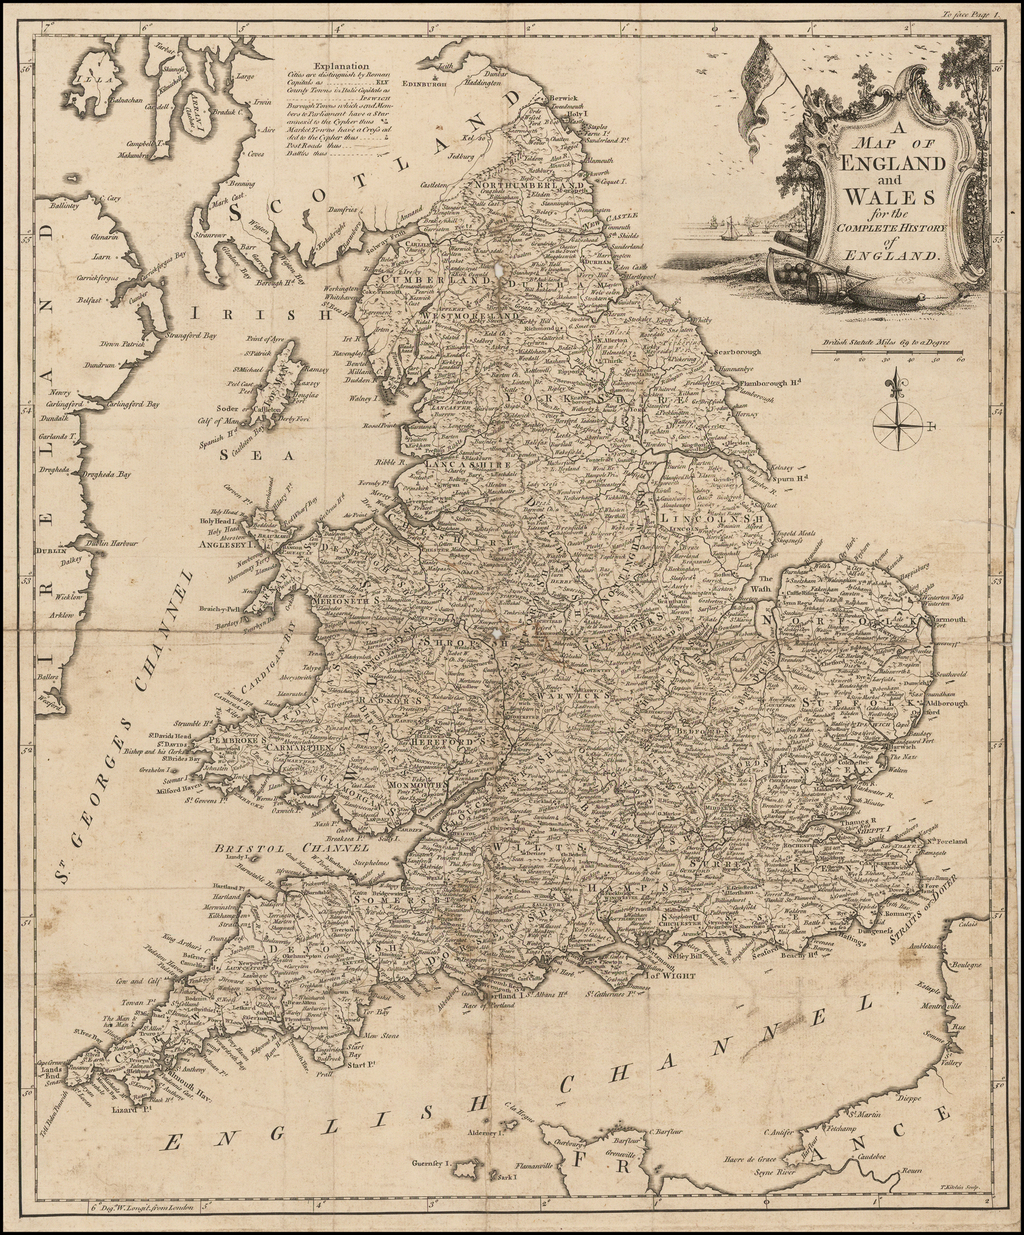 A Map of England and Wales for the Complete History of England By Thomas Kitchin